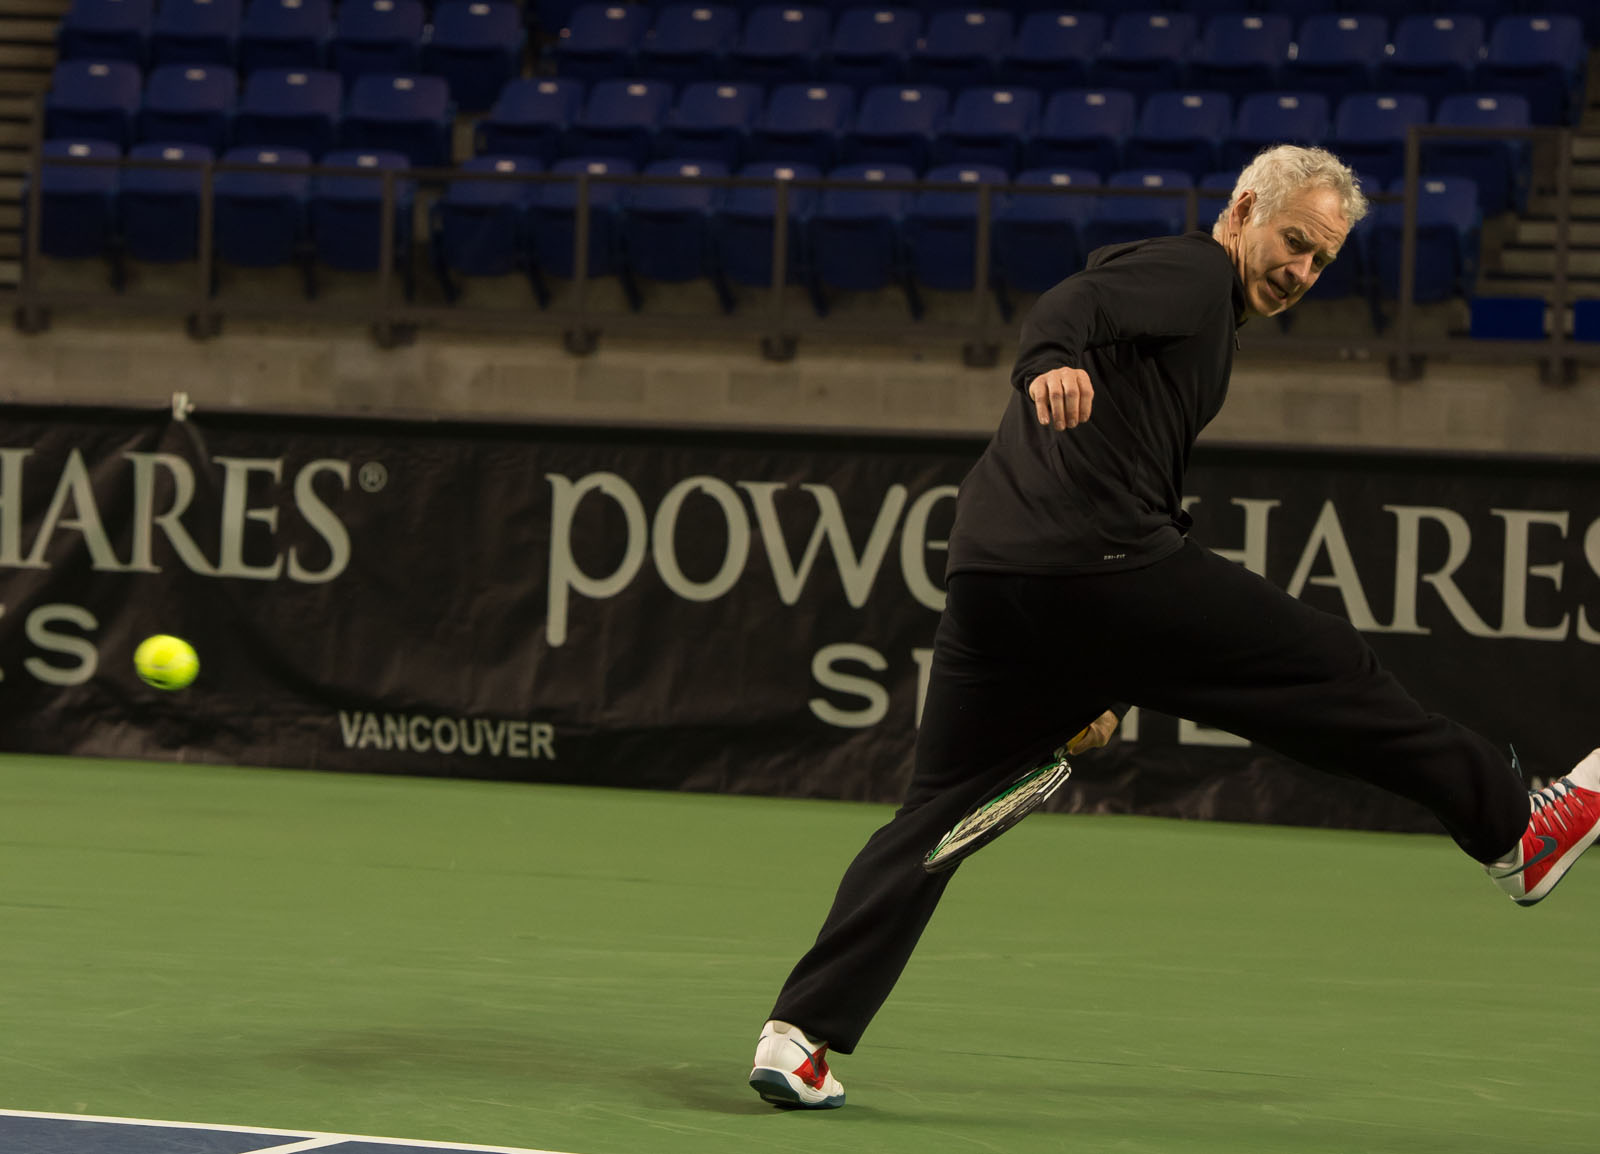 Tennis legend John McEnroe proves he's still got the goods at 56.